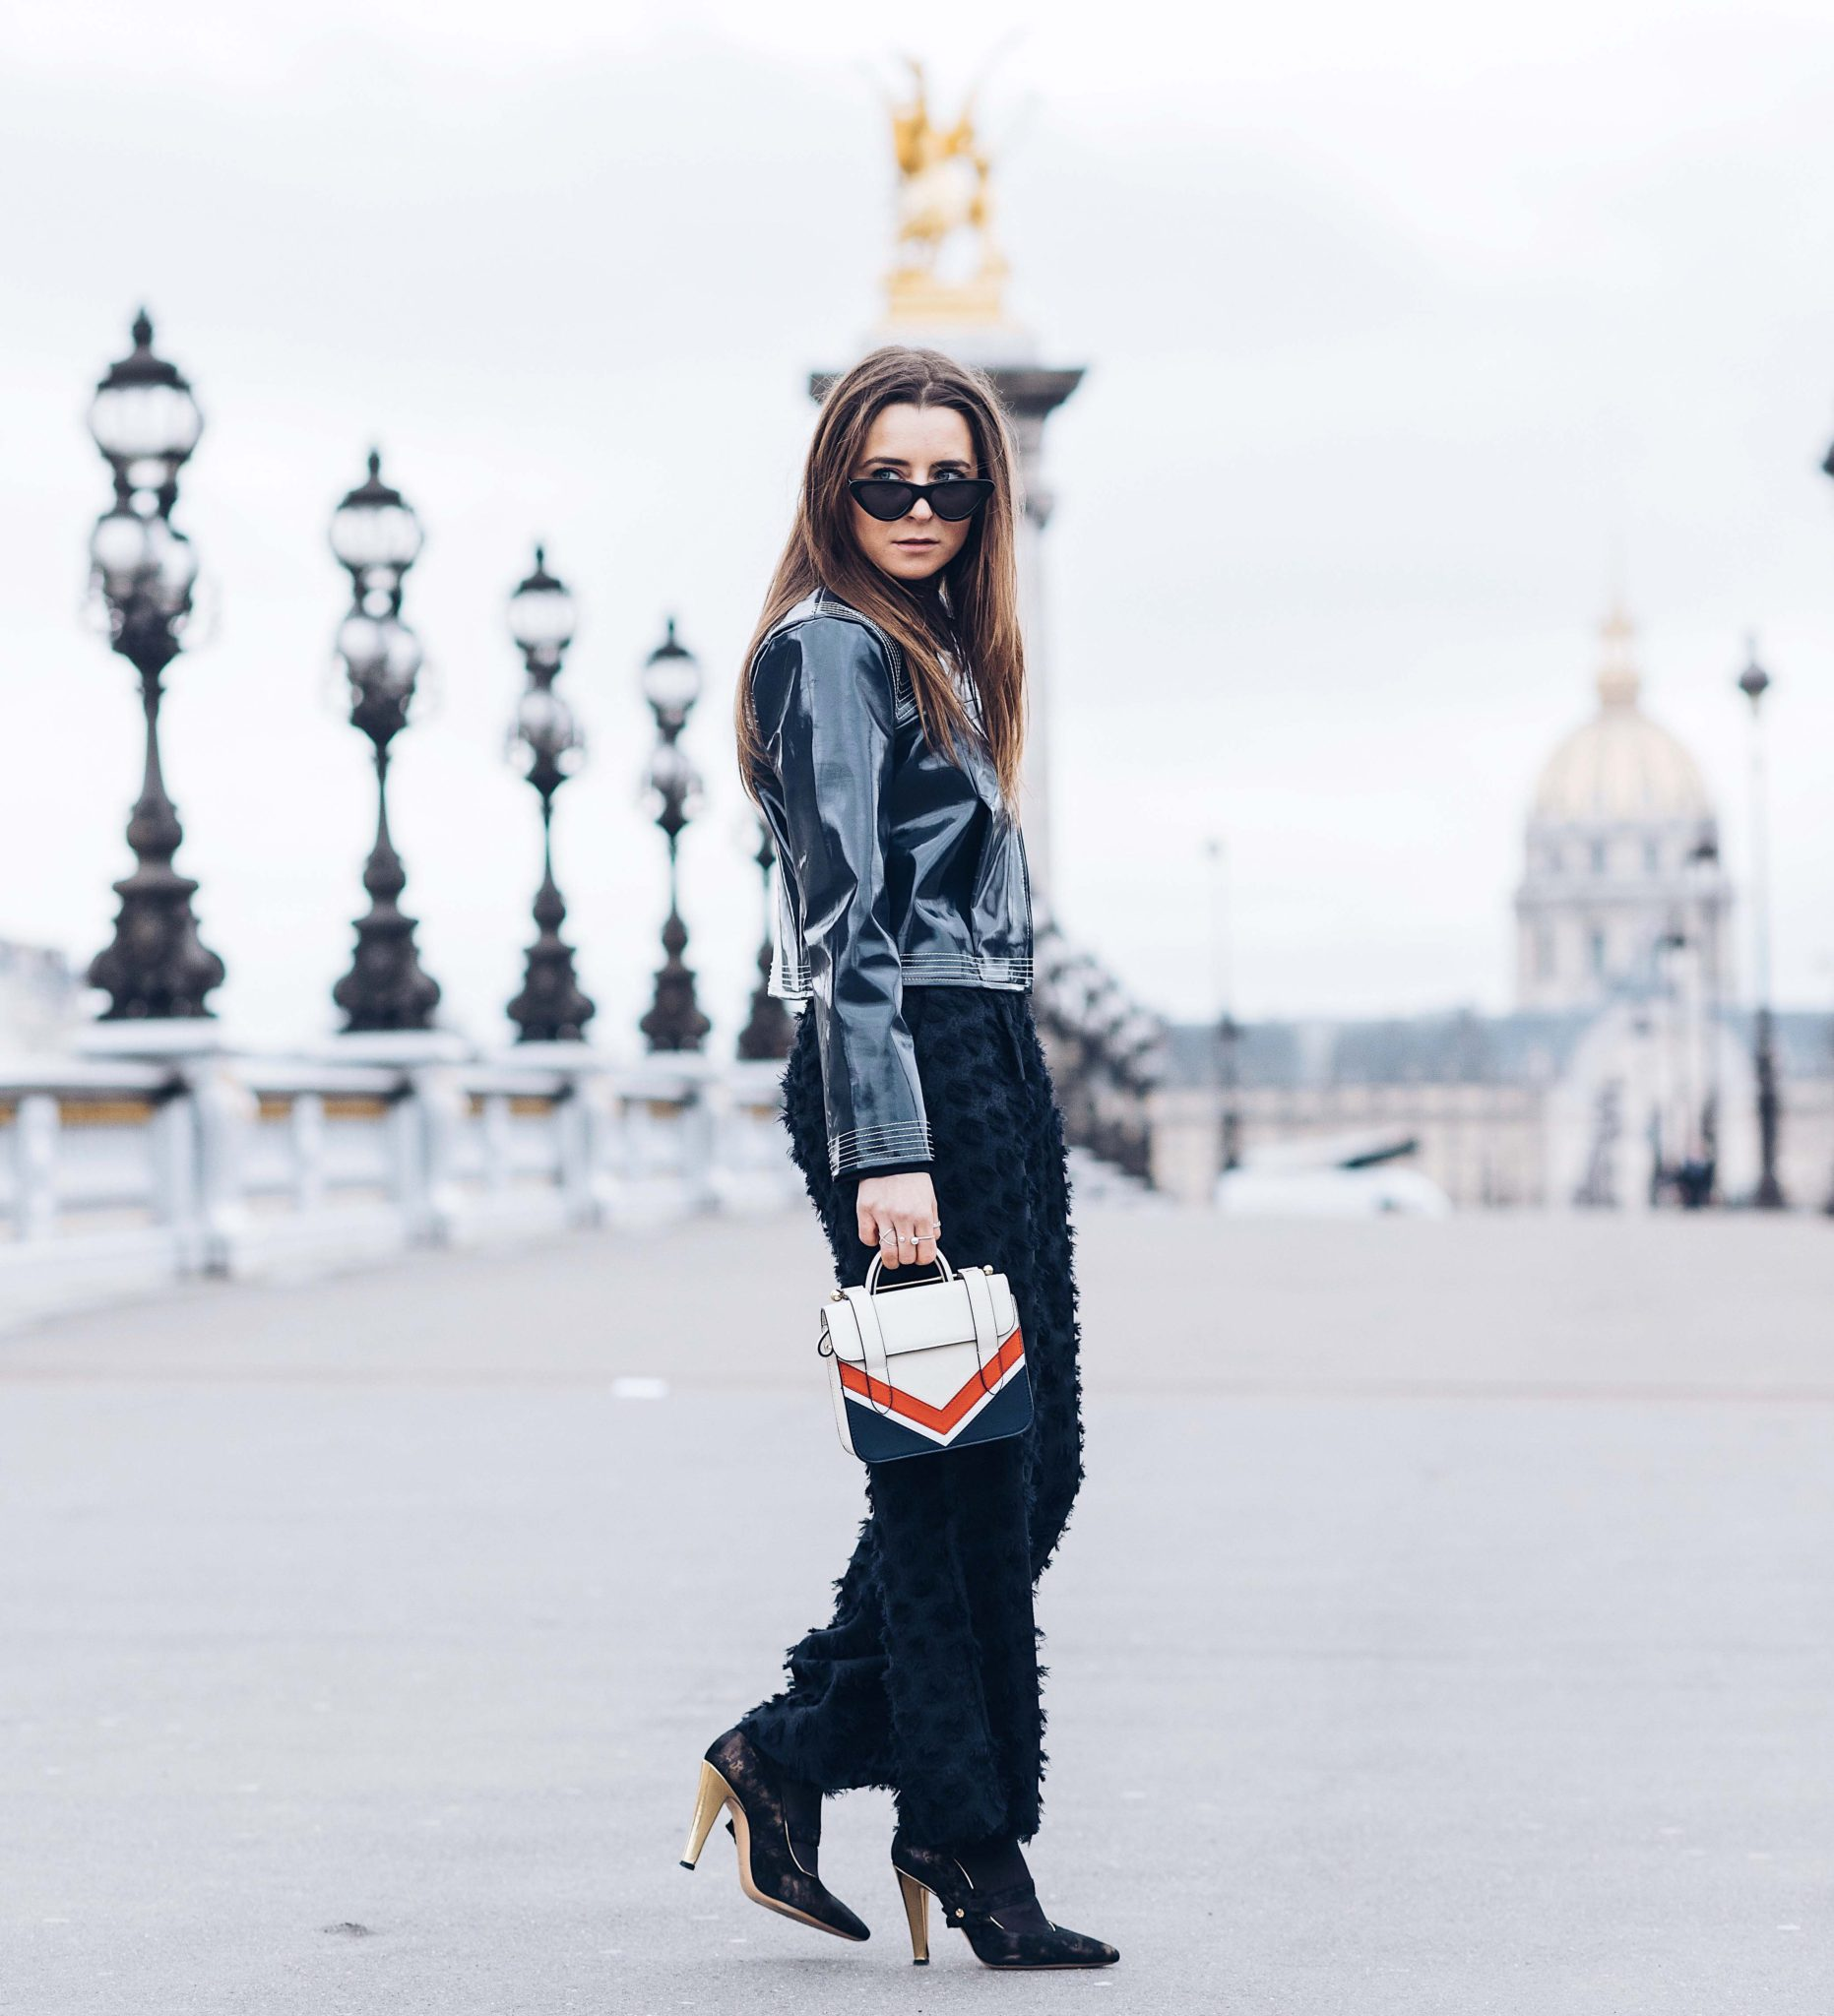 Best Street Style Paris Fashion Week Mars 2018 of Julia Comil / French Fashion Blogger in Los Angeles - Outfit for Chanel Fall Winter 2018 2019 show - Ganni Motor Jacket - Strathberry bag - Gold shoes Dimmino